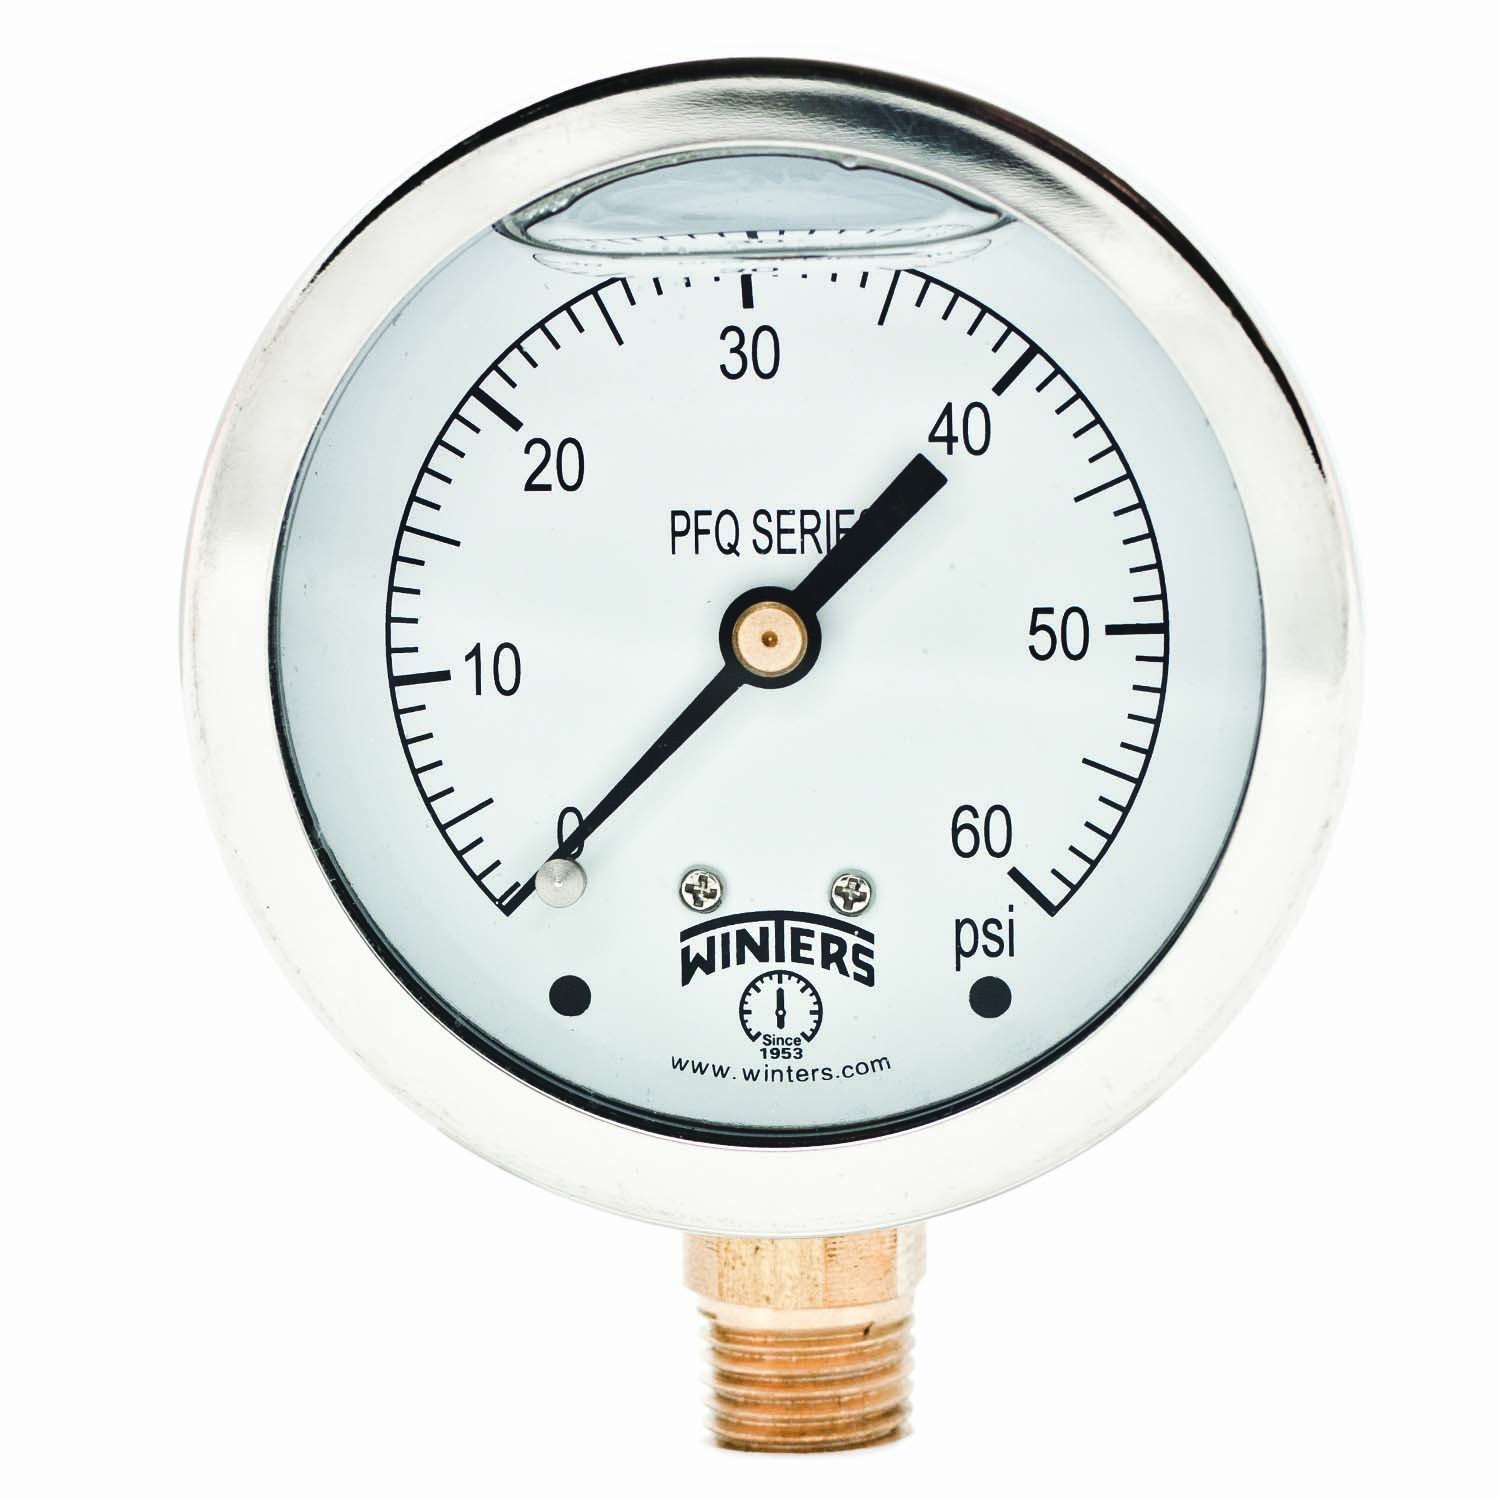 """Winters PFQ Series Stainless Steel 304 Single Scale Liquid Filled Pressure Gauge with Brass Internals, 0-60 psi, 2-1/2"""" Dial Display, +/-1.5% Accuracy, 1/4"""" NPT Bottom Mount"""